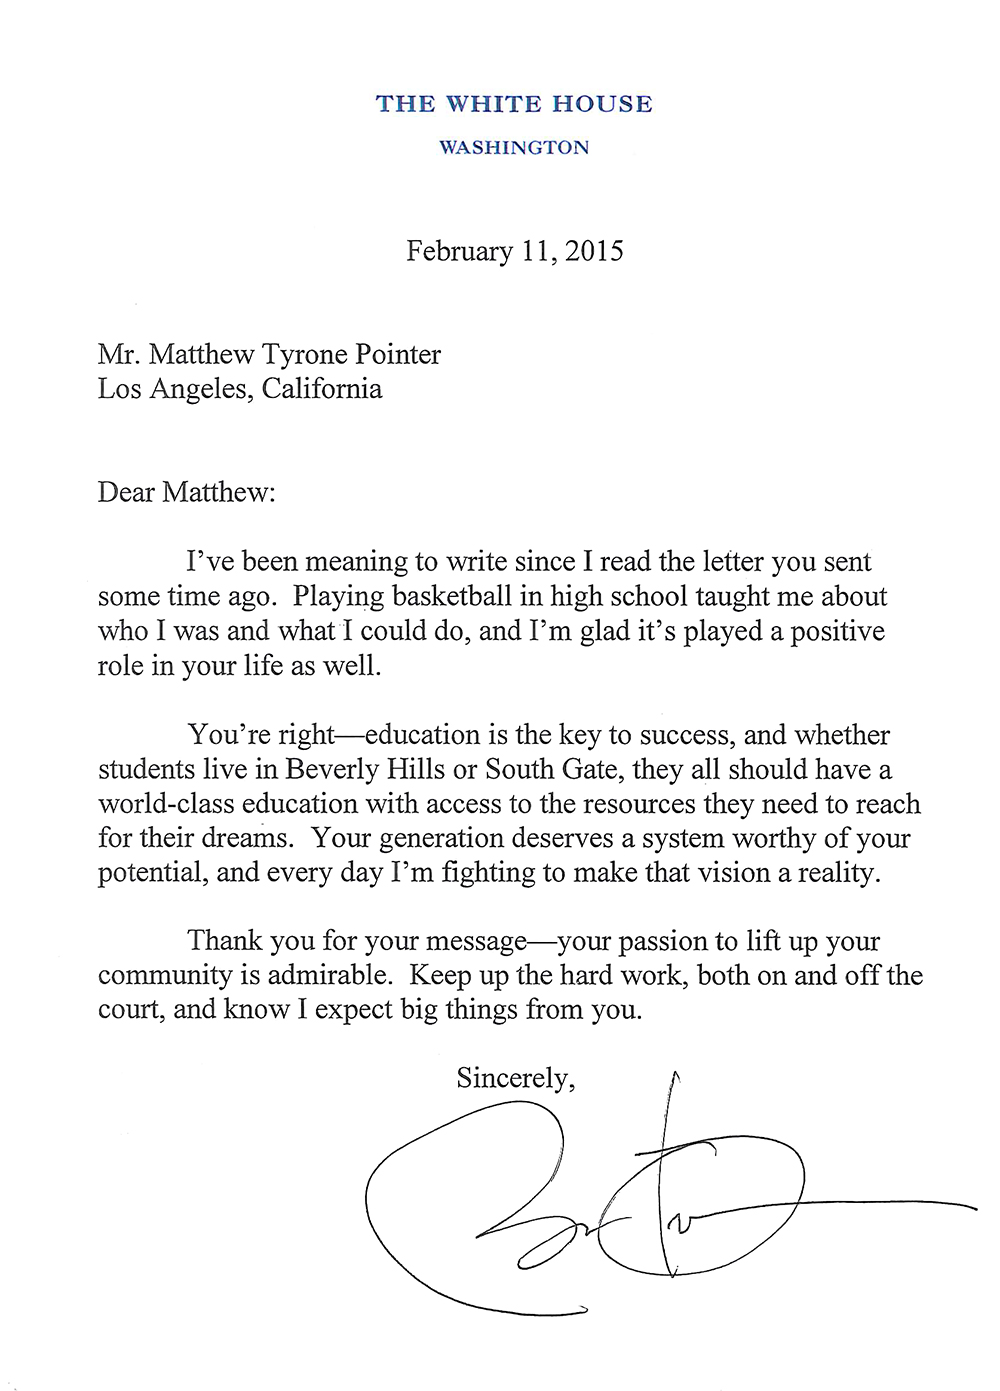 Asked and Answered: Matthew's Letter to the President | whitehouse.gov